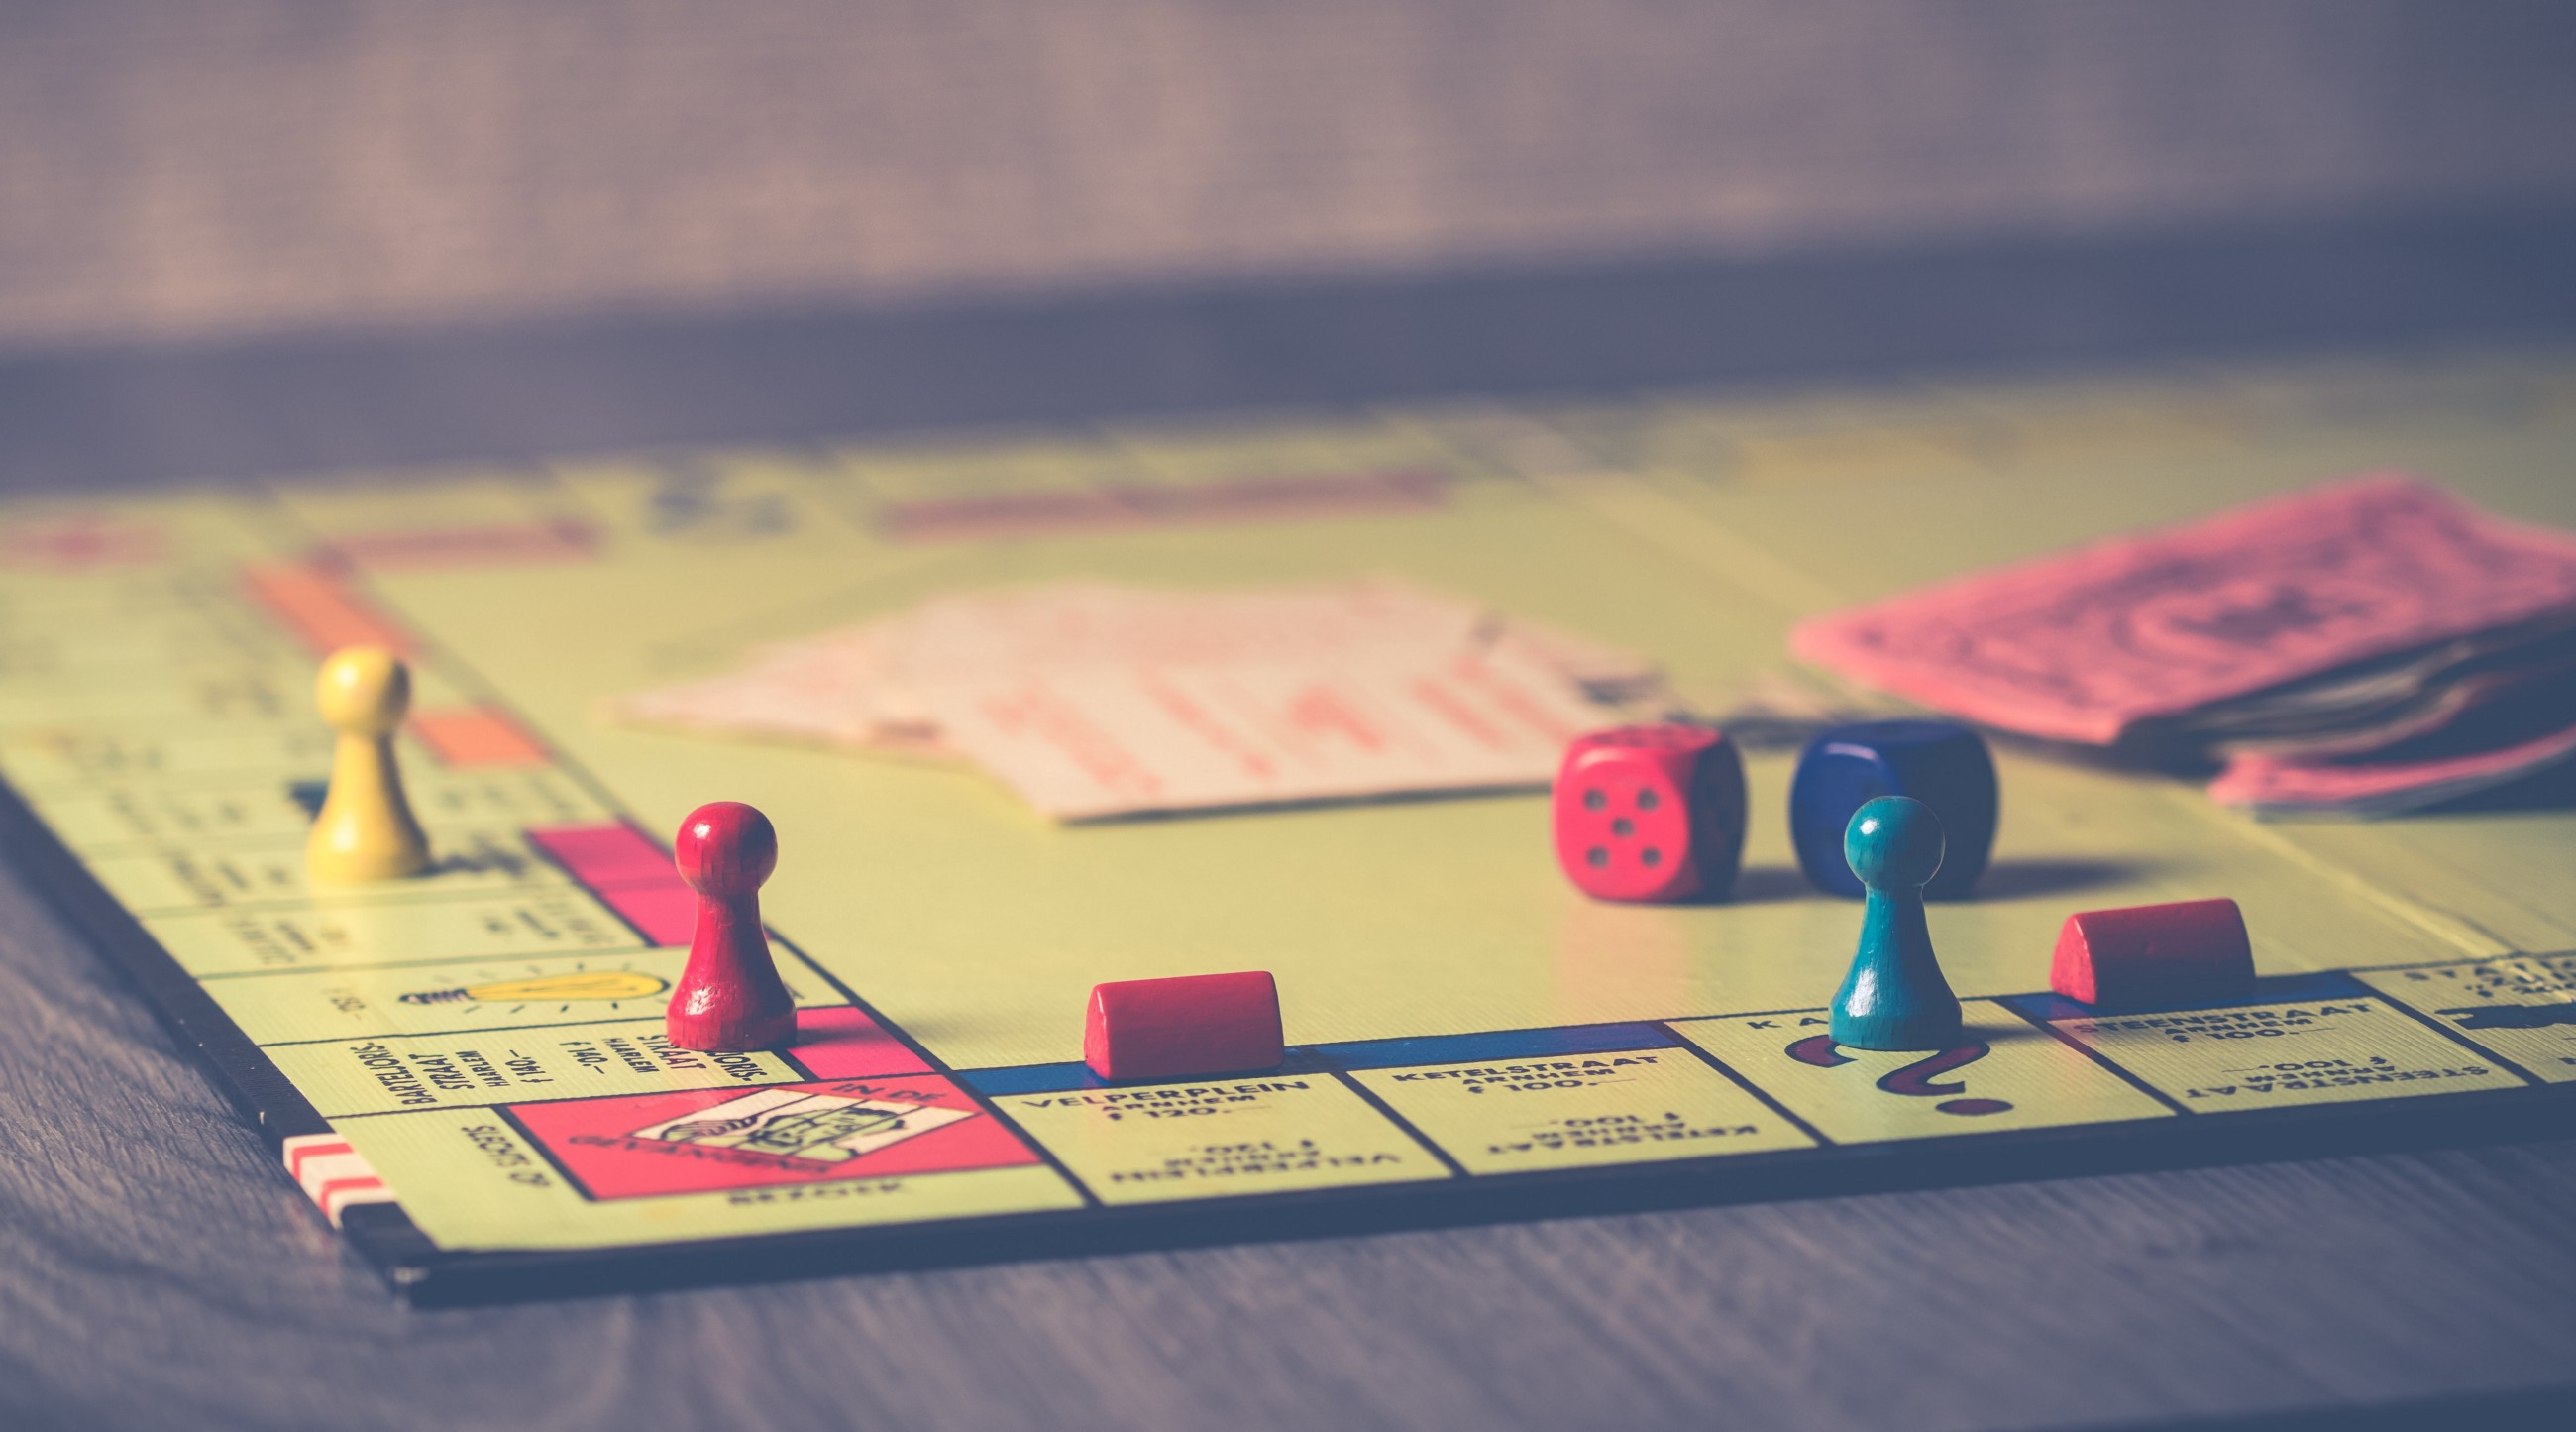 /monopoly-innovative-functionality-edition-c449df007678 feature image